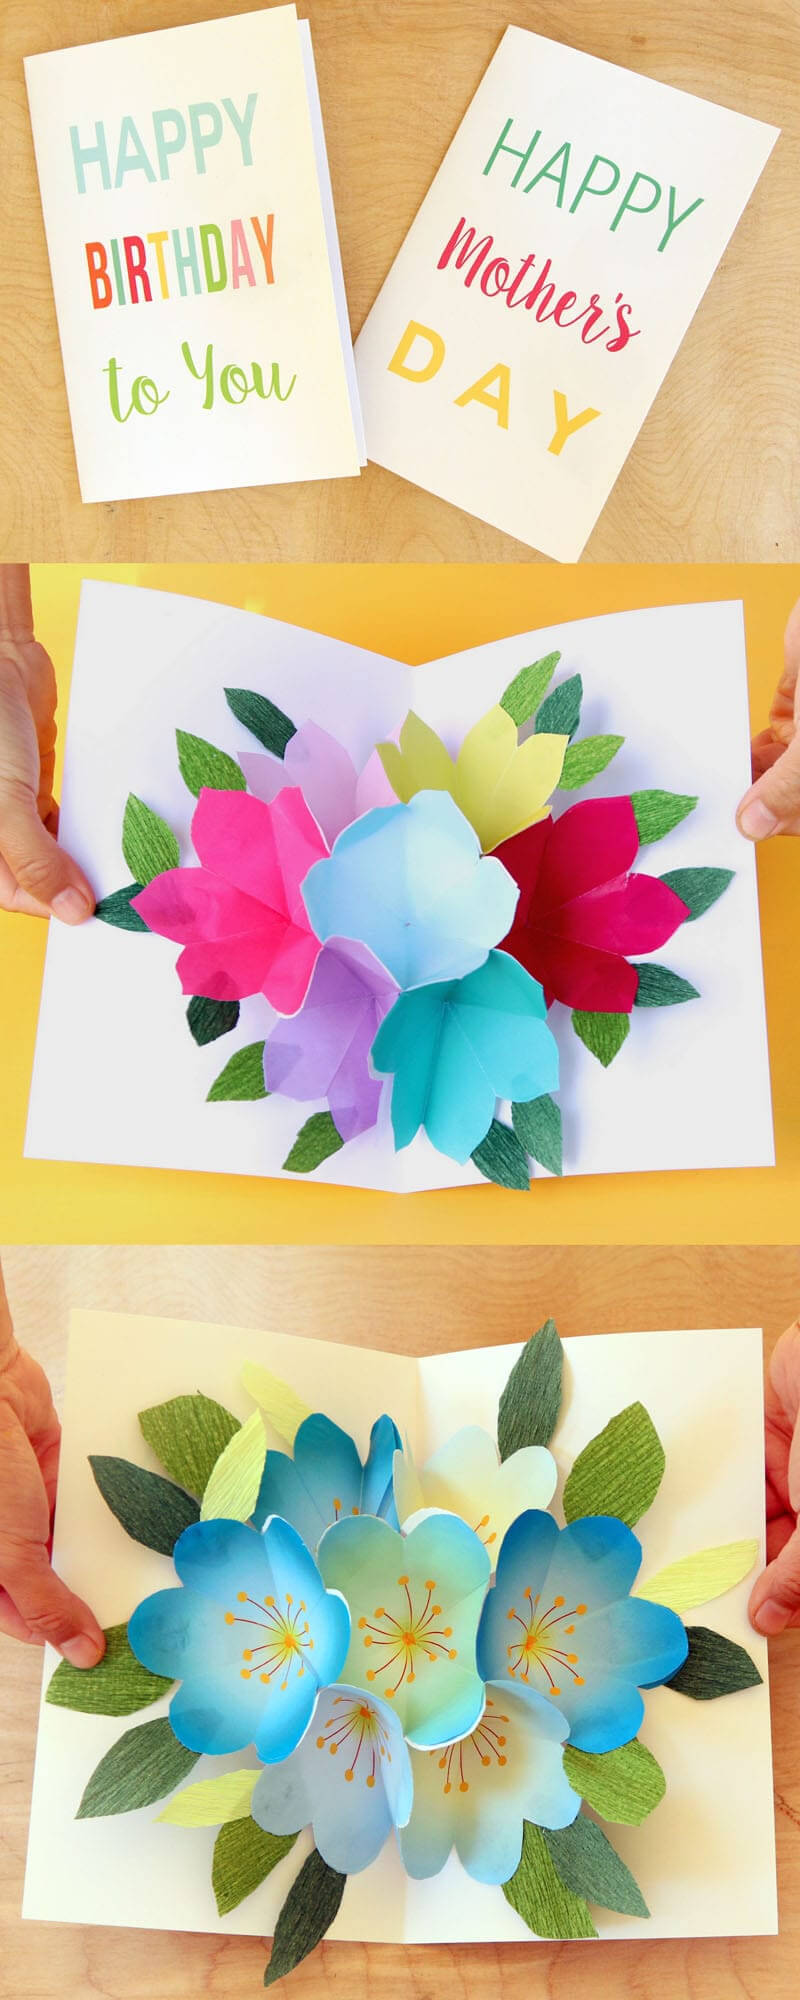 Free Printable Happy Birthday Card With Pop Up Bouquet - A inside Mom Birthday Card Template